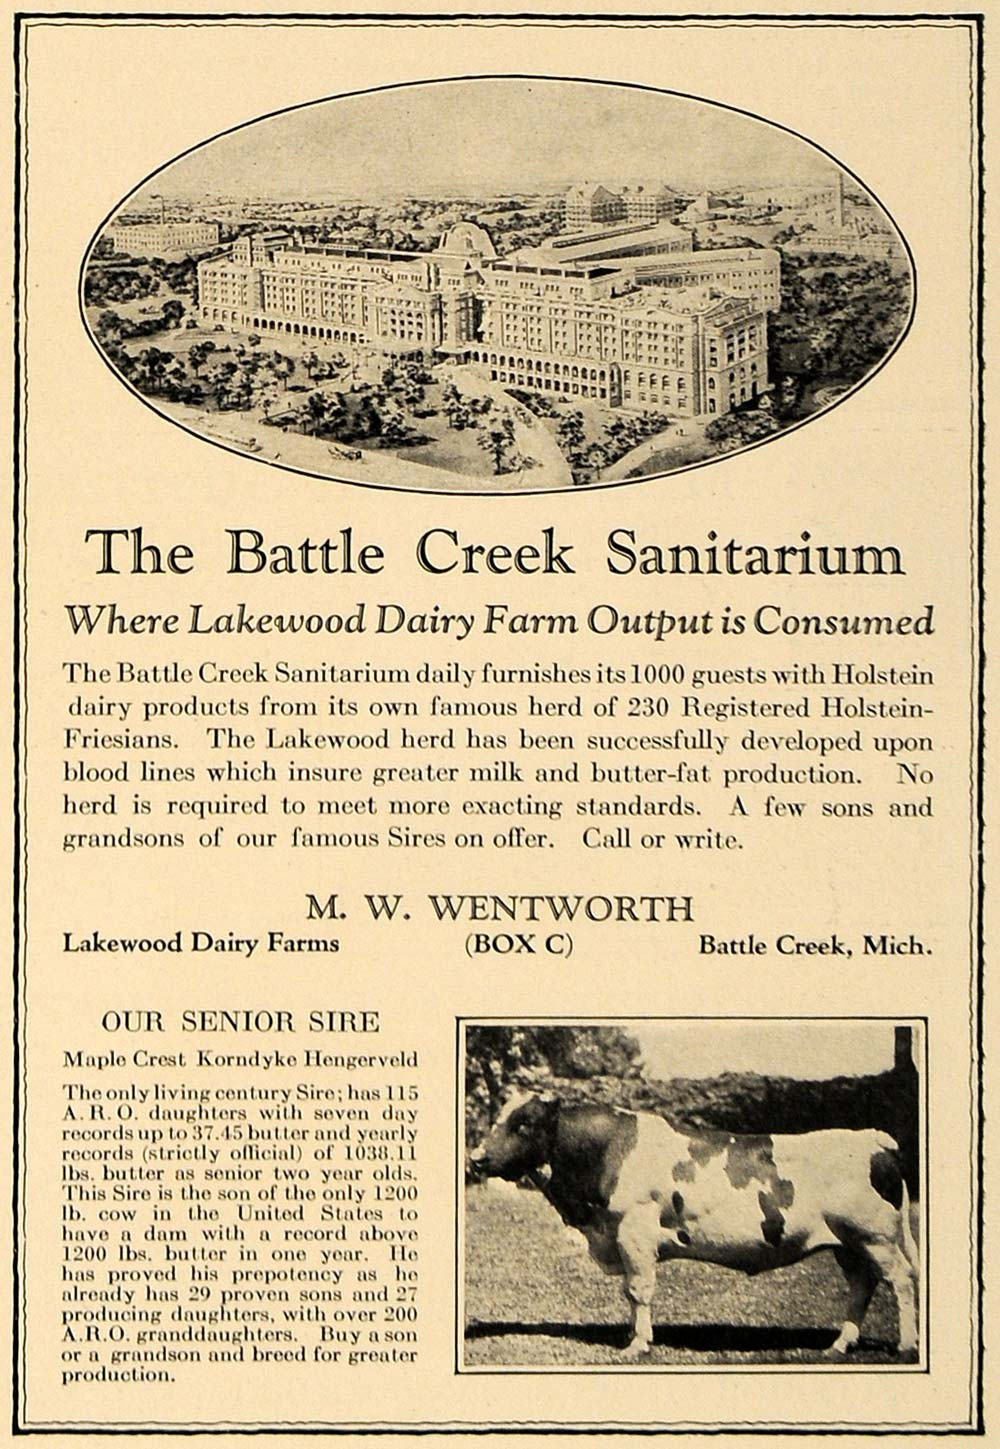 1925 Ad Battle Creek Sanitarium Lakewood Dairy Farms - ORIGINAL ADVERTISING CL7